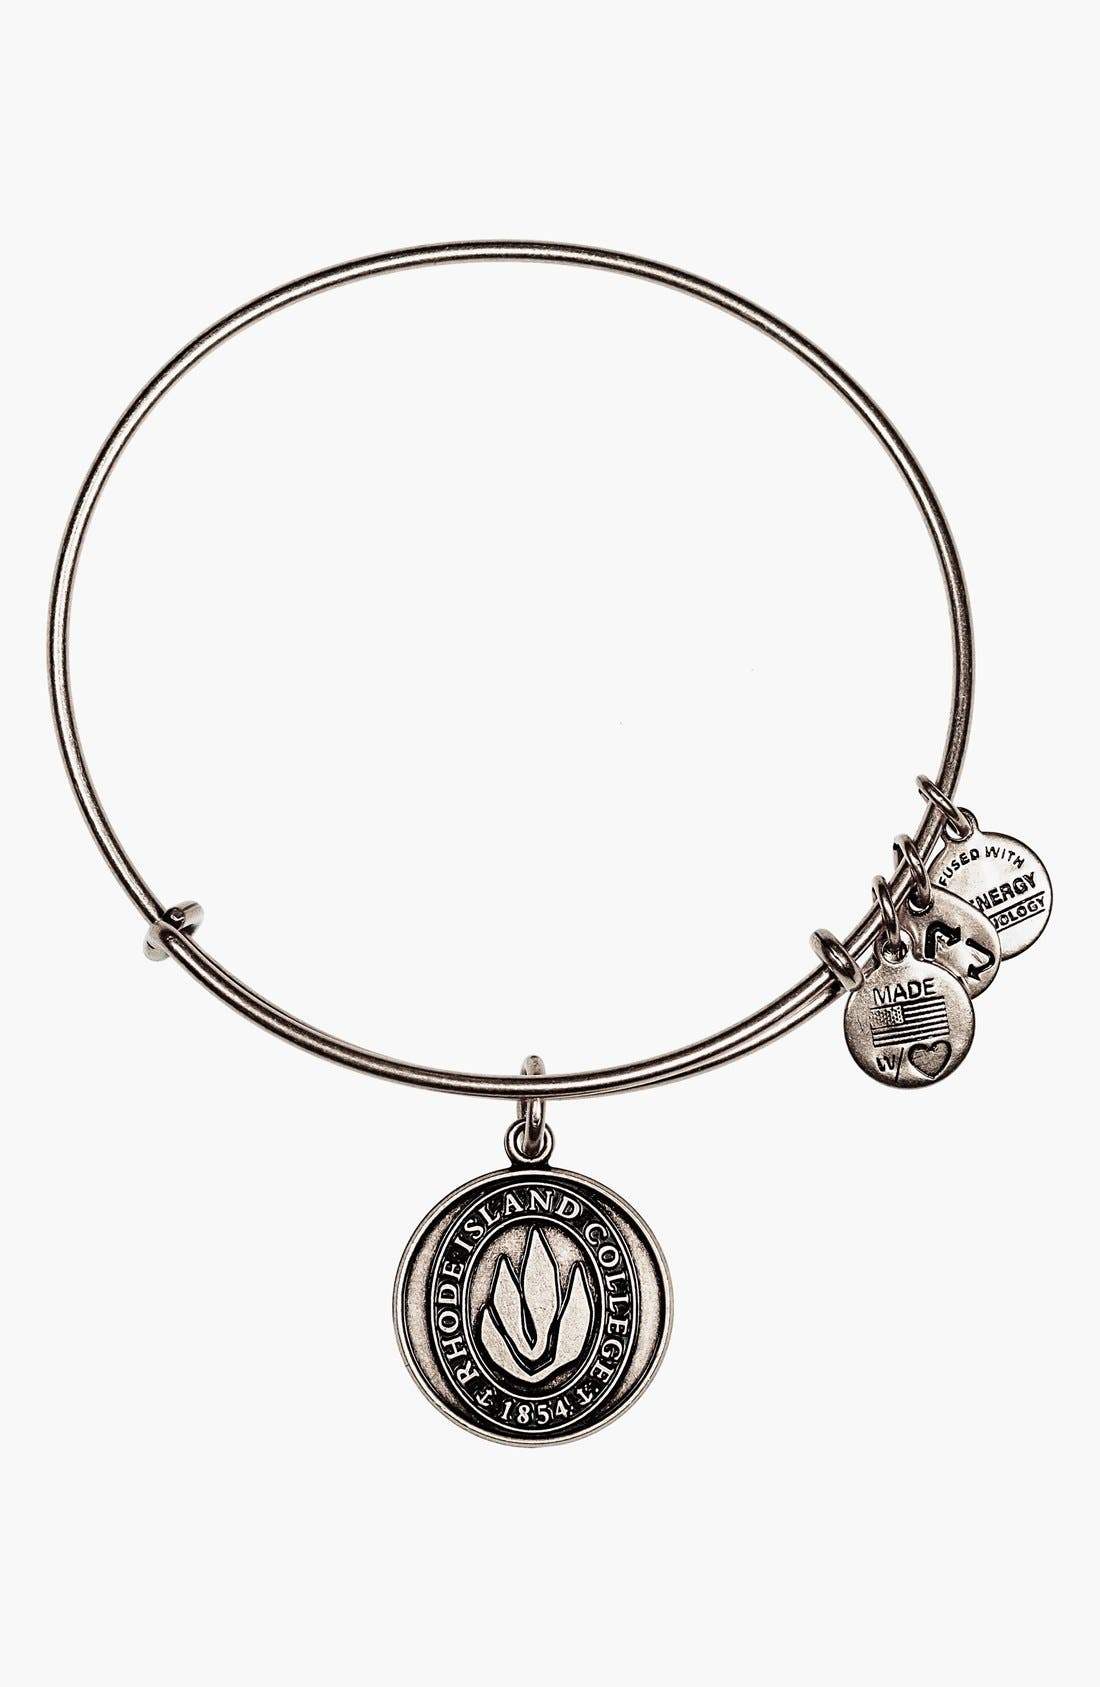 'Collegiate - Rhode Island College' Expandable Charm Bangle,                         Main,                         color, RUSSIAN SILVER